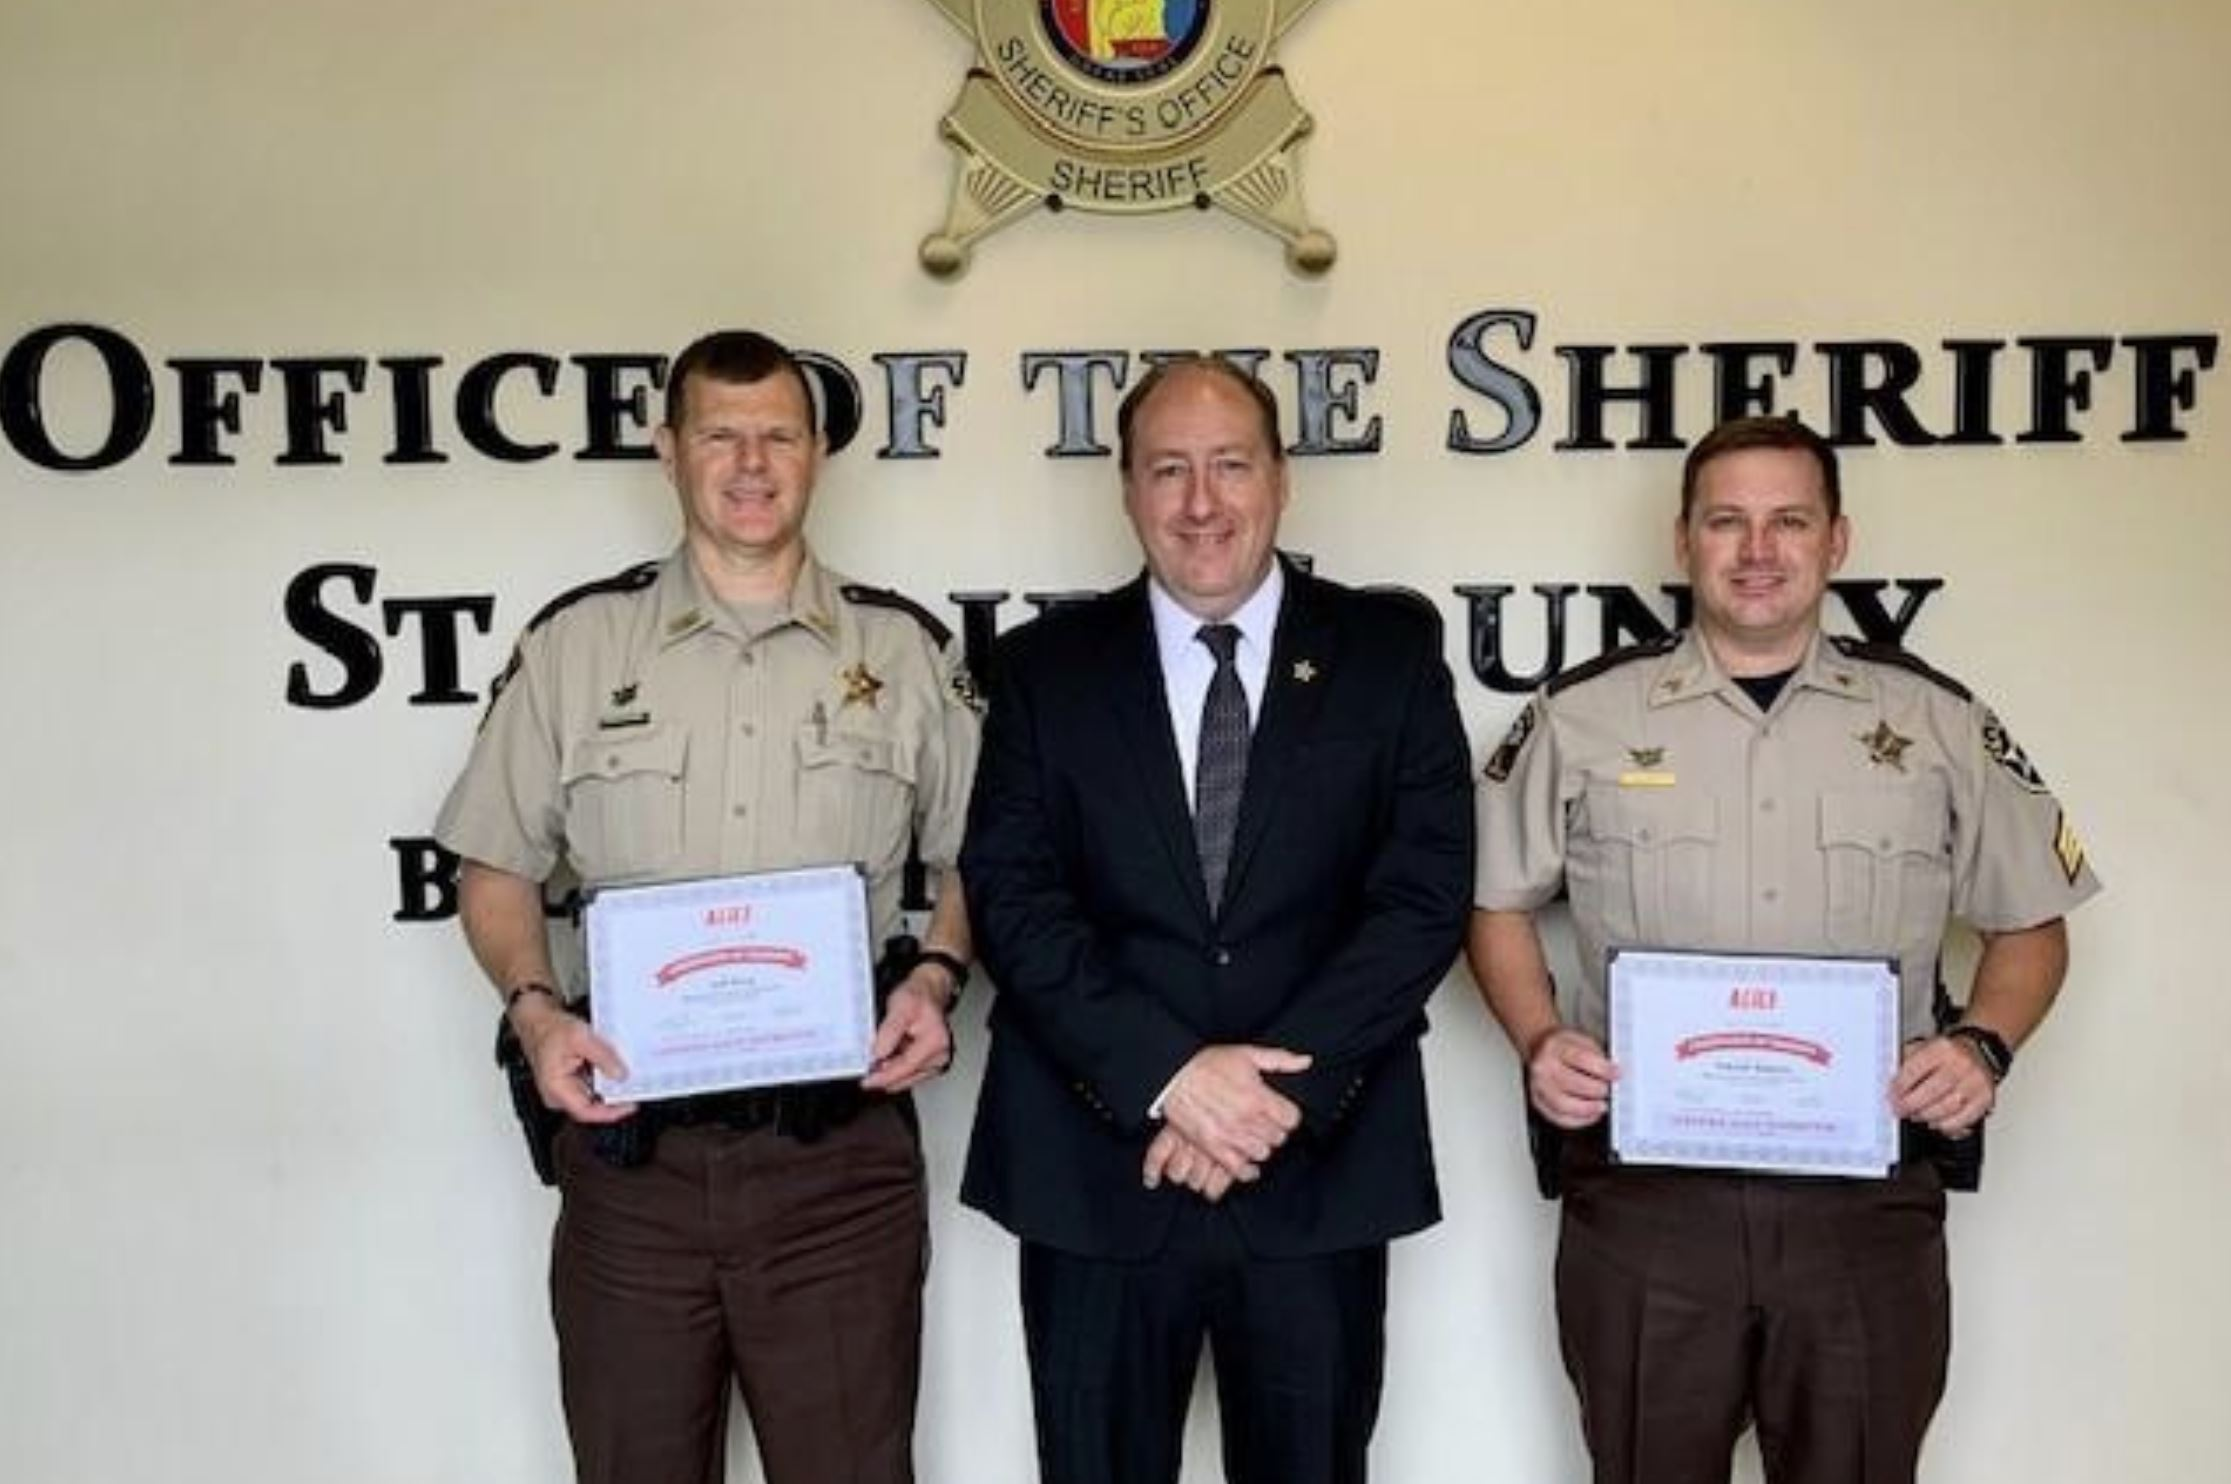 St. Clair County Sheriff's deputies trained to teach active shooter course